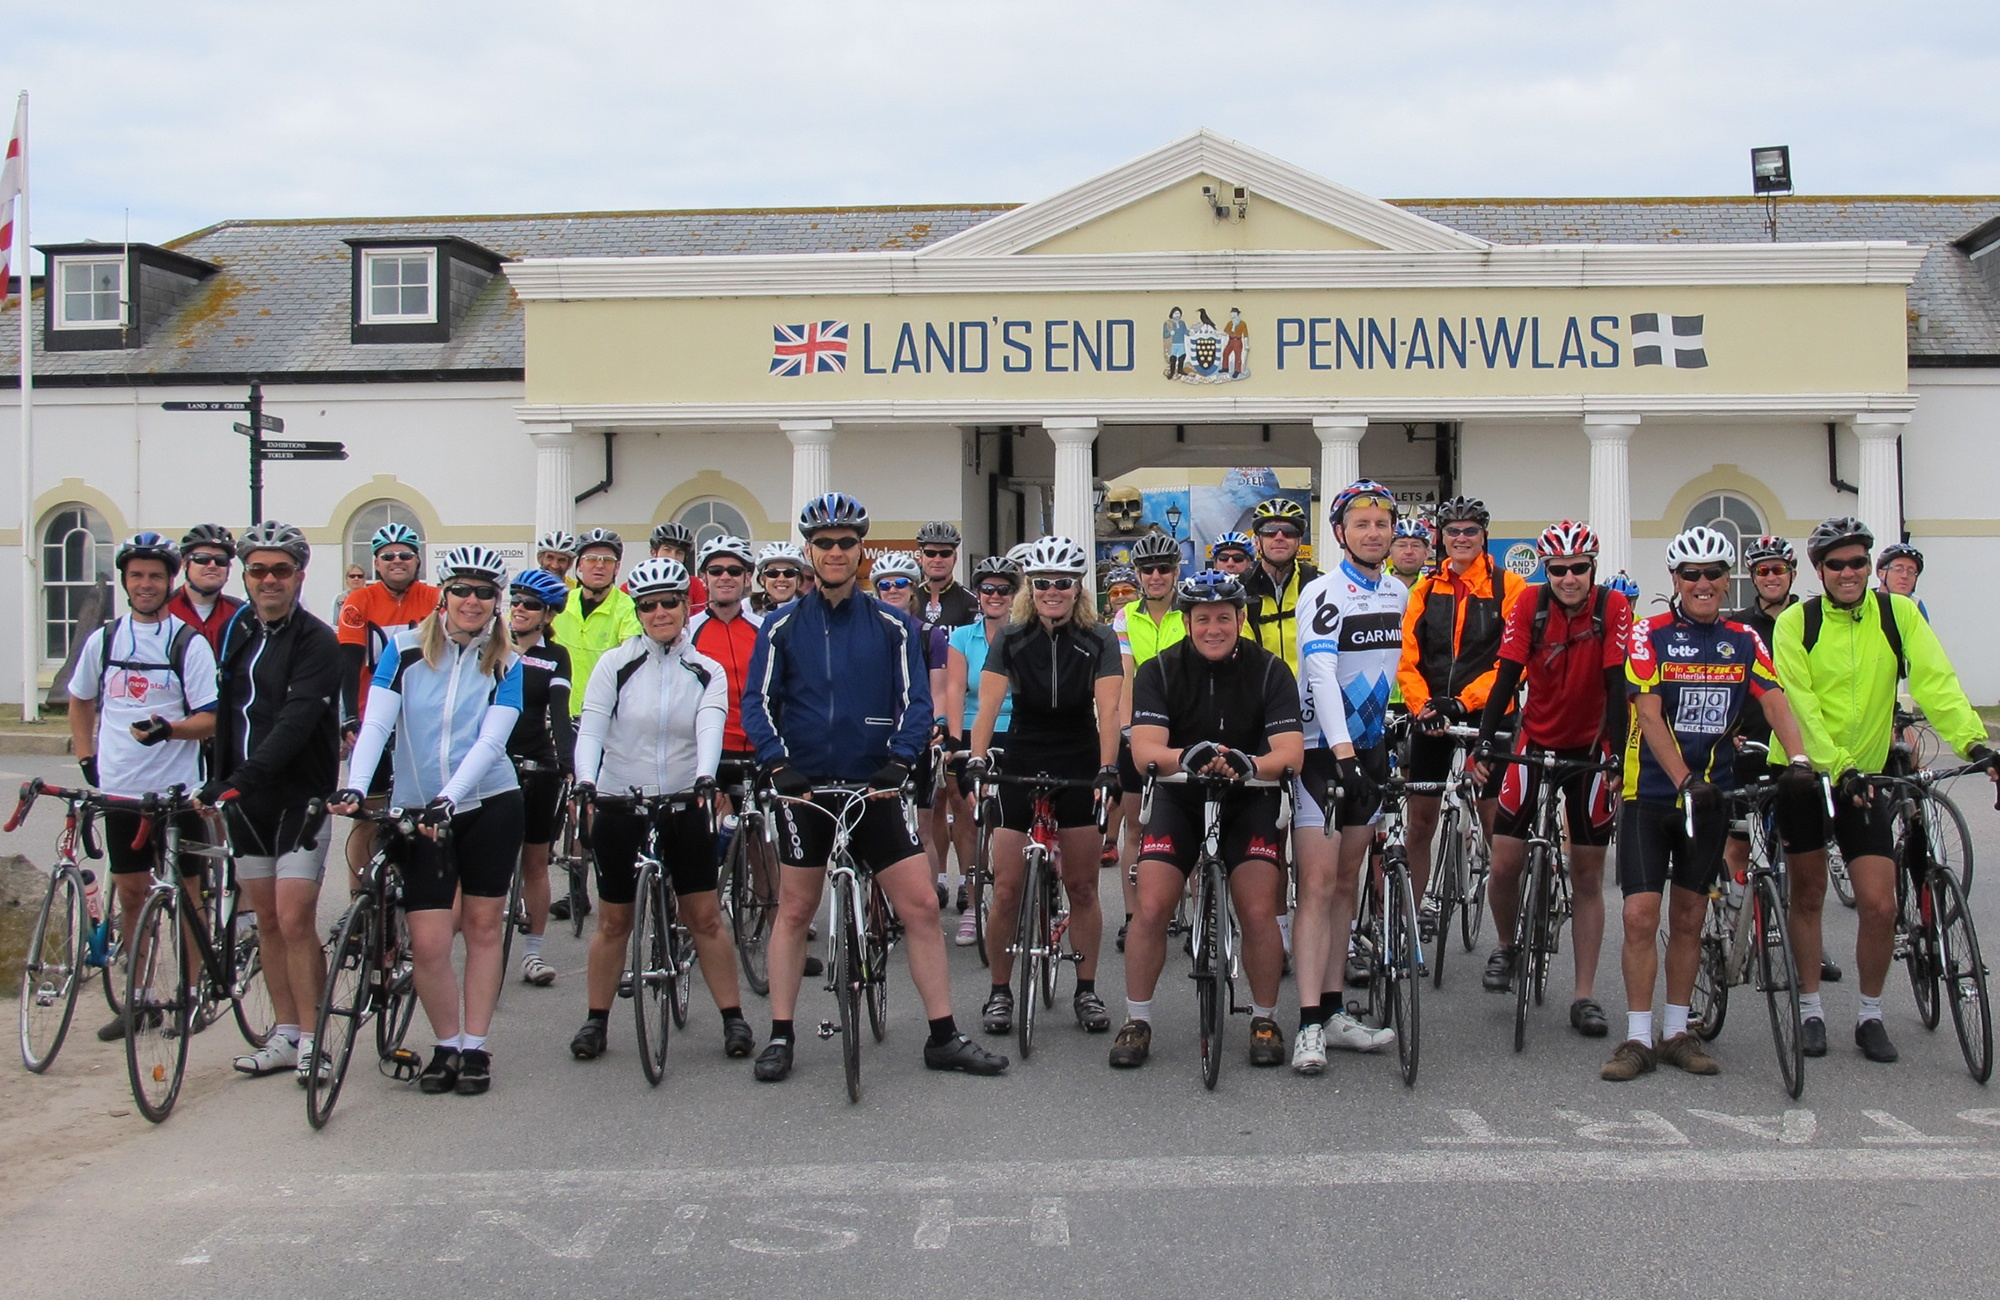 Lands_End_charity_bike_ride_start.jpg